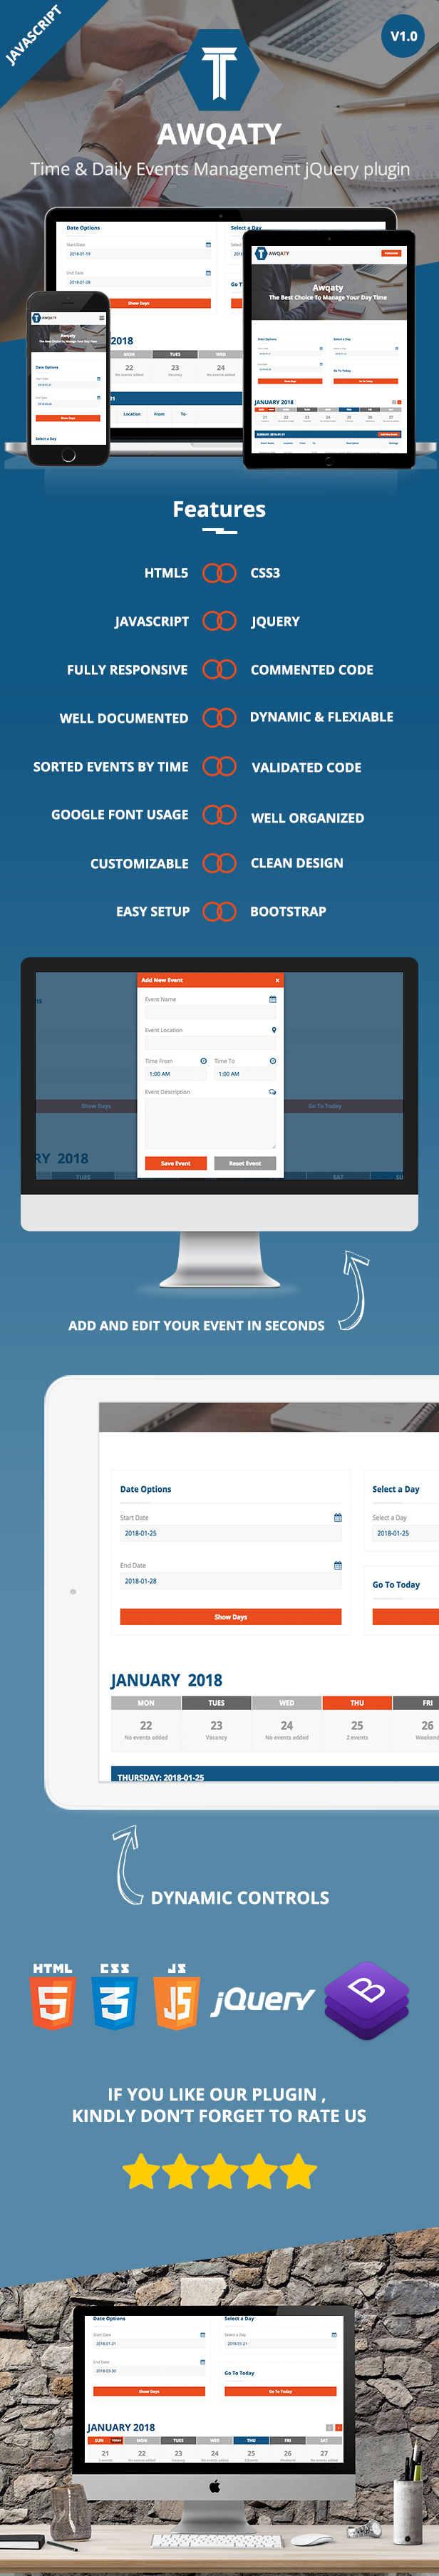 Awqaty - Time and Daily Events Management Plugin - 2